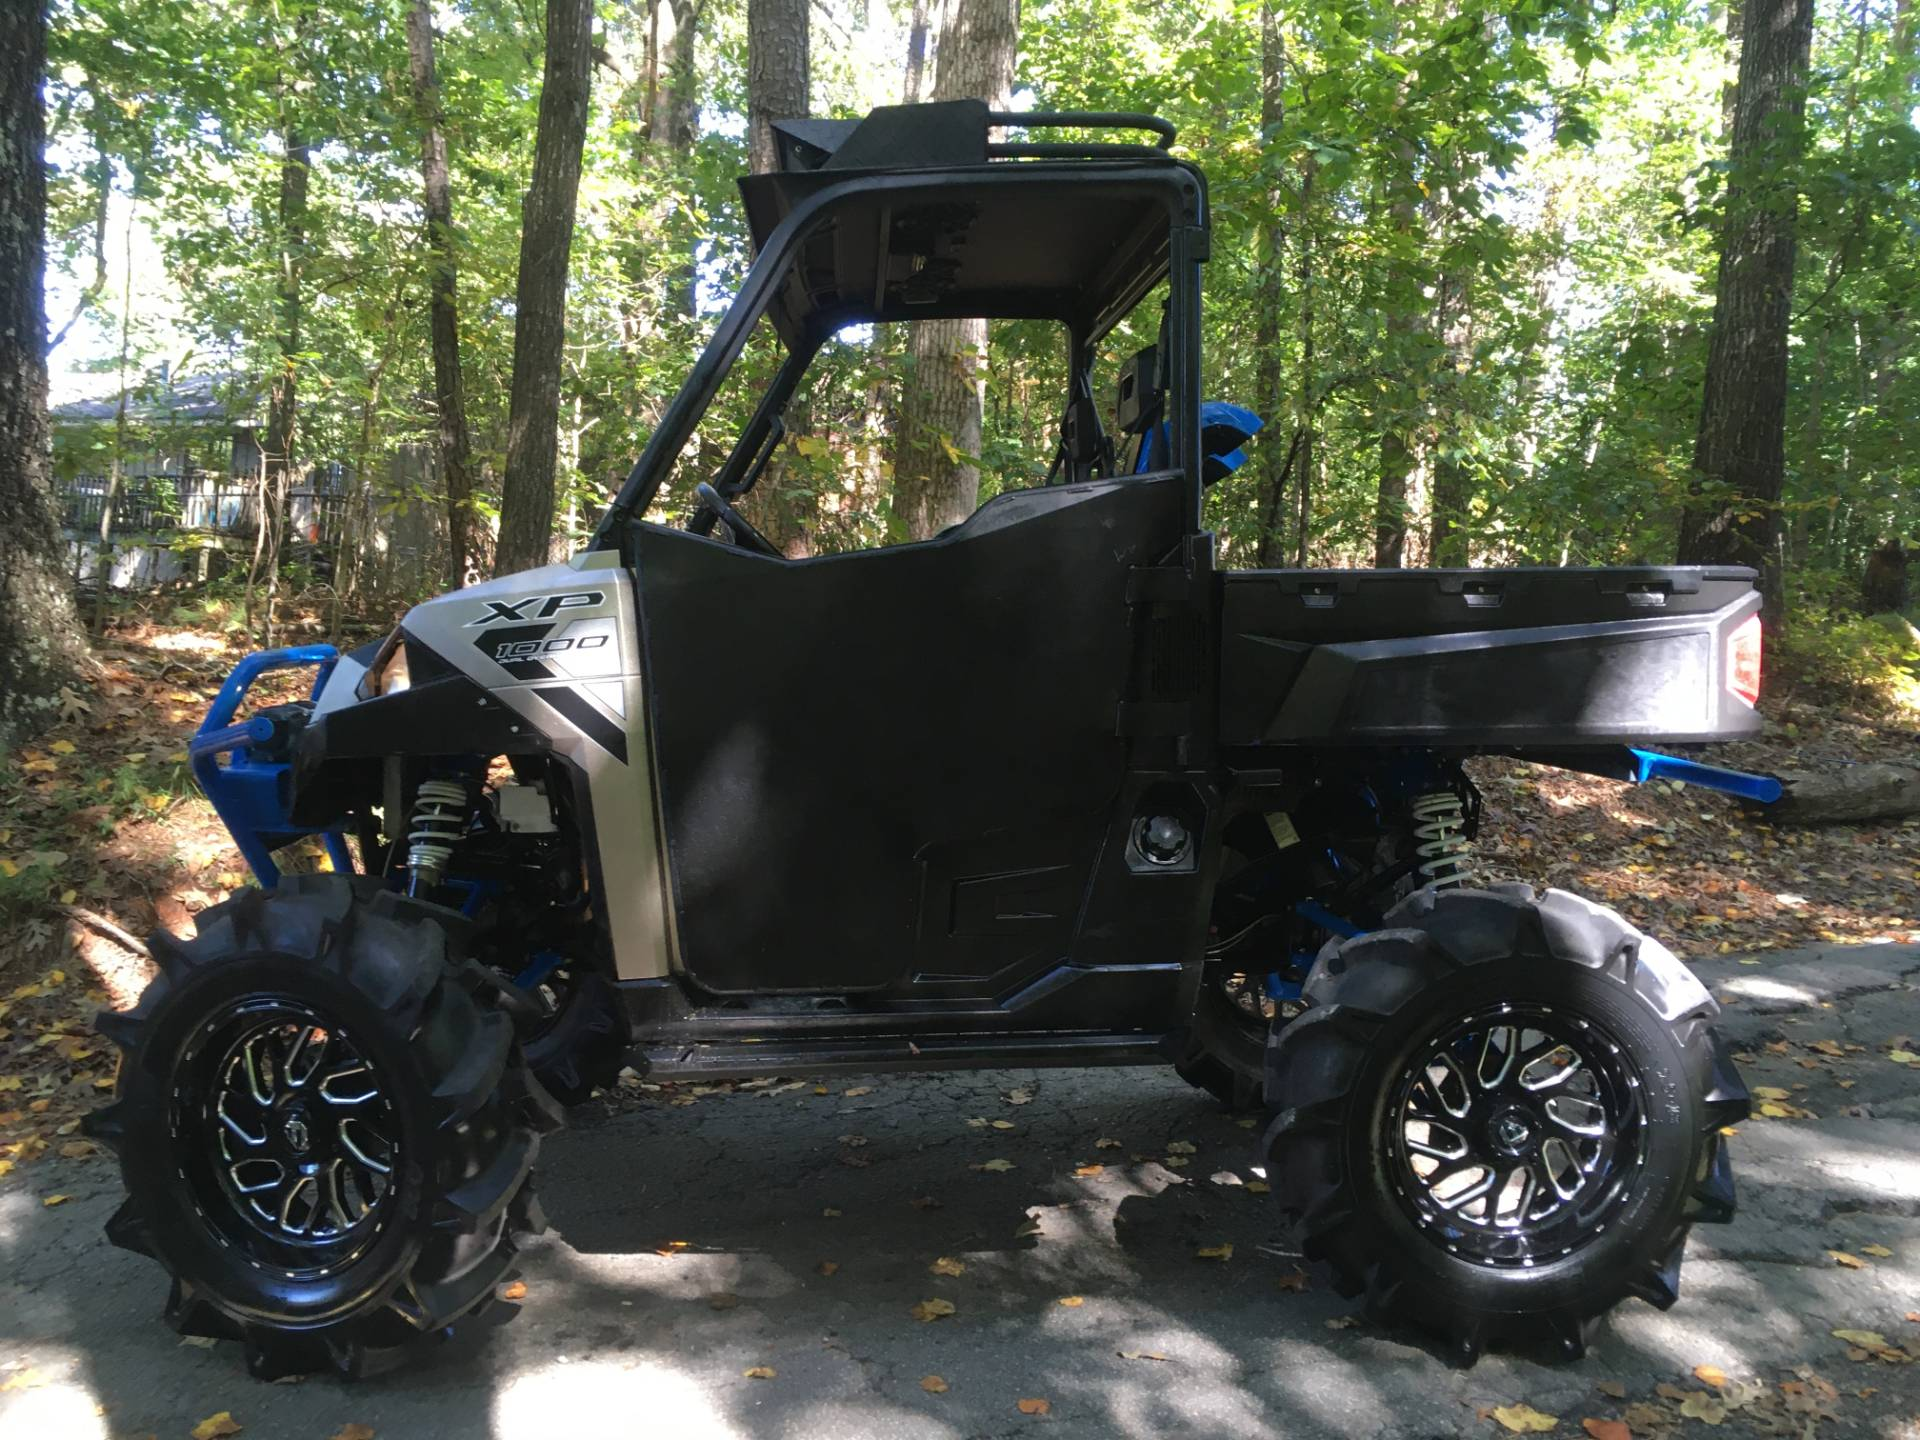 2017 POLARIS RANGER XP 1000 HIGH LIFTER EPS in Woodstock, Georgia - Photo 2